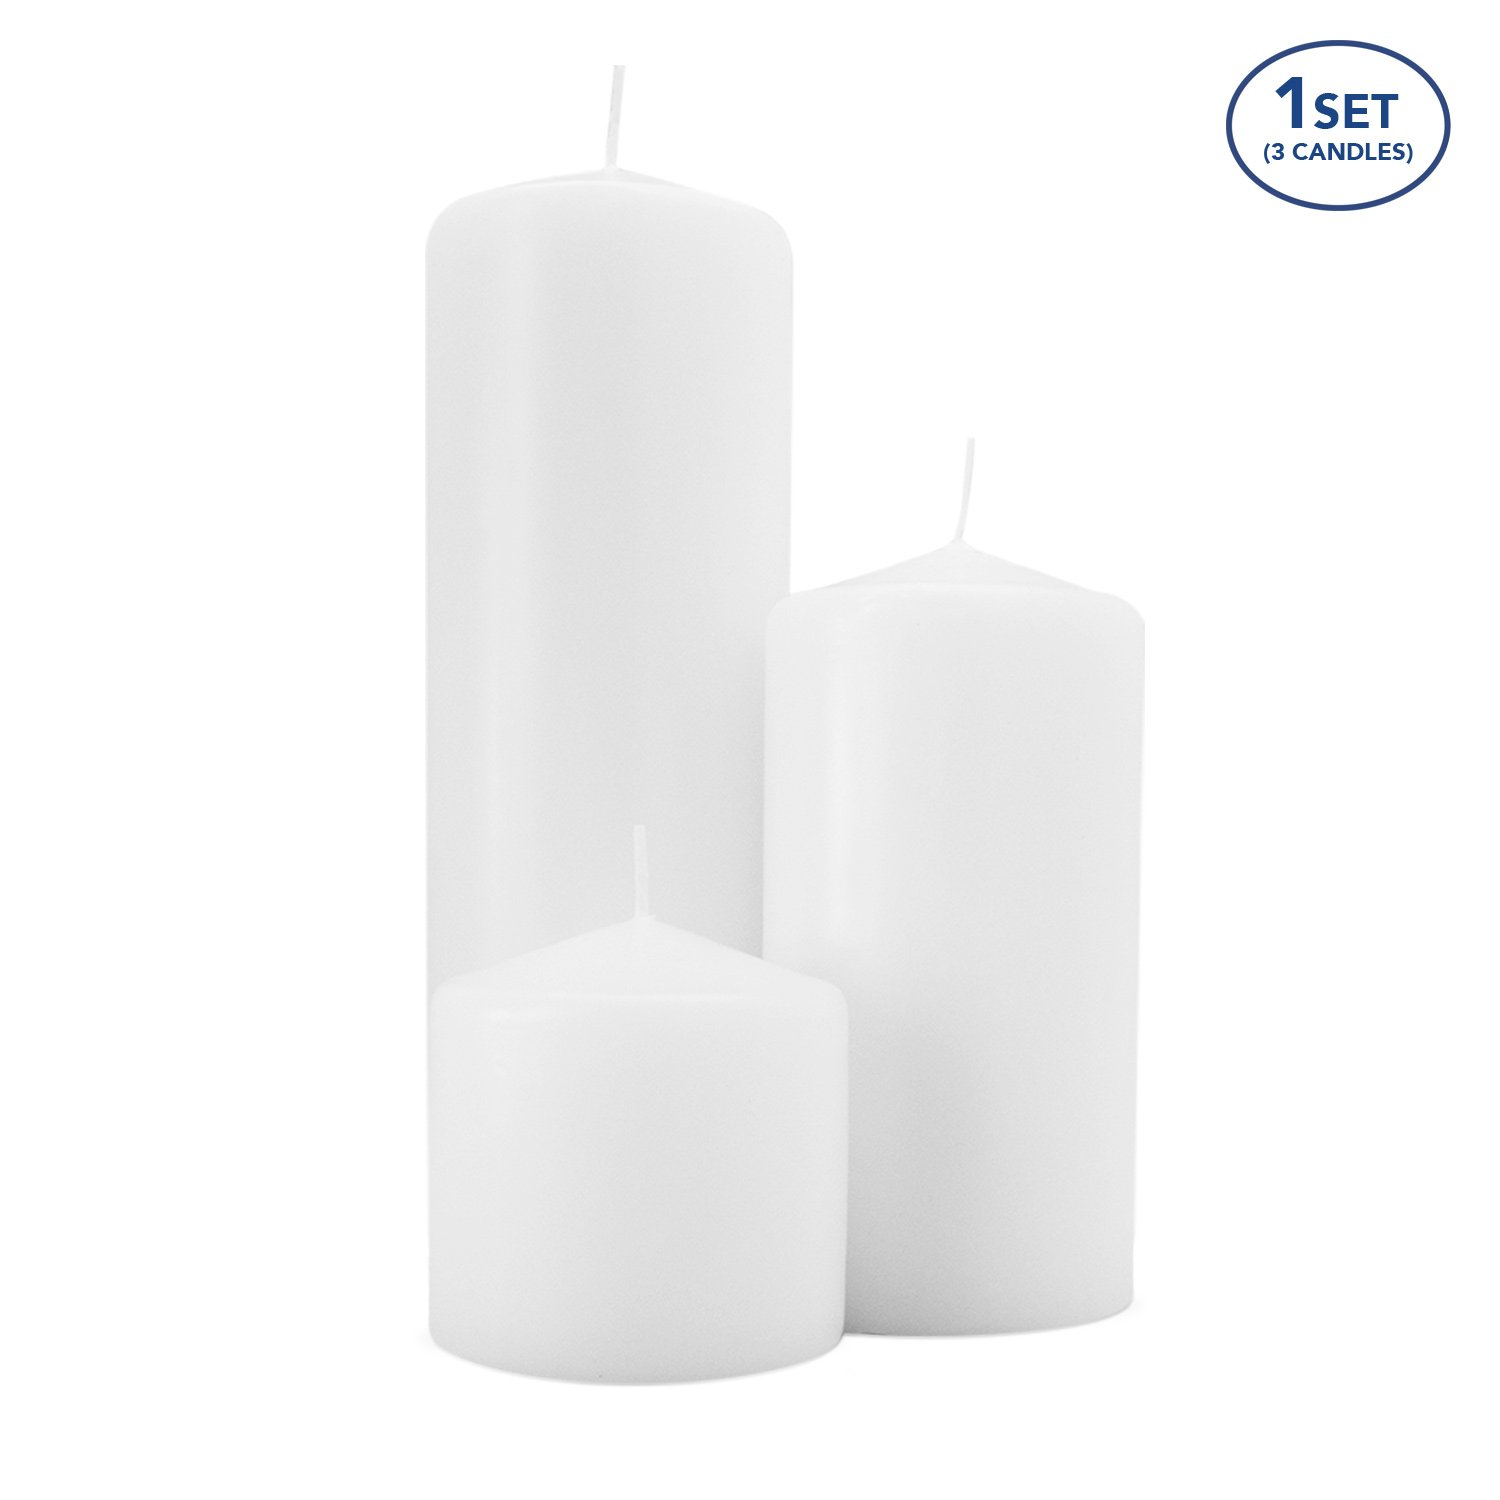 Royal Imports 1 Set of 3 Pillar Candles (3 Candles) Wedding, Birthday, Holiday & Home Decoration, 3x3, 3x6, 3x9, White Wax